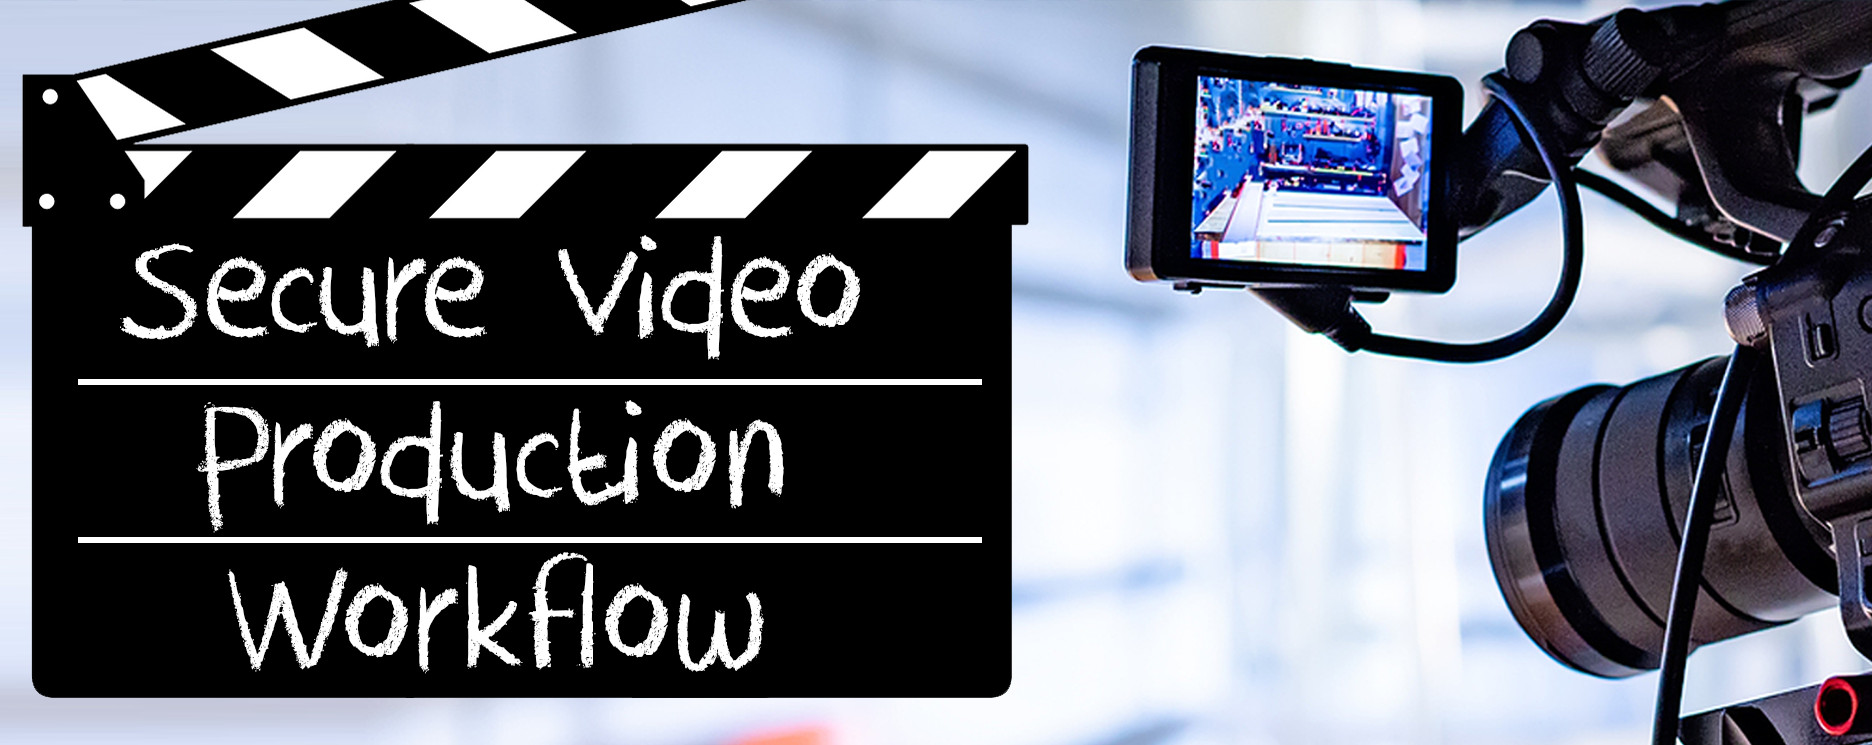 RAW Video Shuttling - The Secure Managed Data Transport